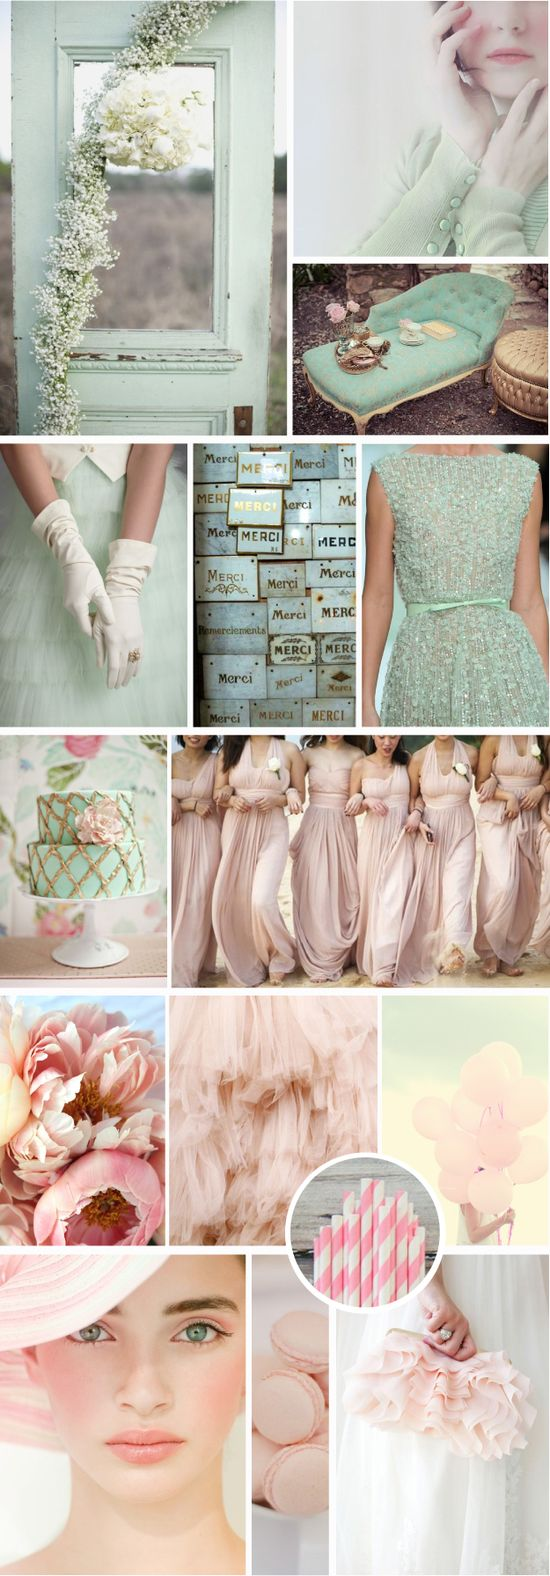 White dress by the shore - Blush And Mint Wedding Inspiration From Matt Valk Chuah White Dress By The Shore